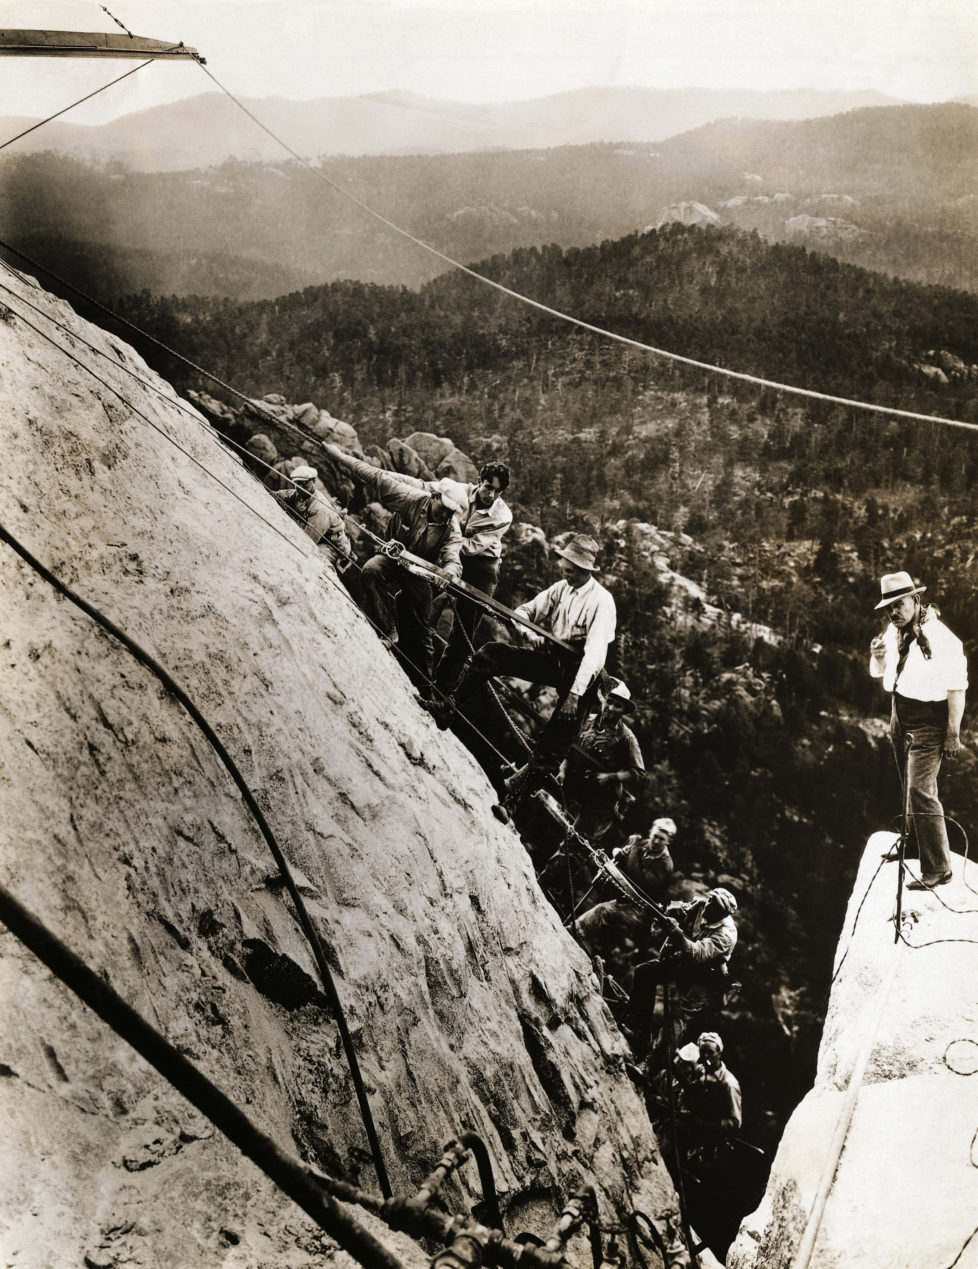 American sculptor Gutzon Borglum (r), who is leading the Mount Rushmore National Memorial project, stands on top of Mount Rushmore with a gang of his sculptors, finishing and smoothing the great granite cliff that will form part of the memorial. The sculptors are standing on the section which will become the forehead of George Washington. (Photo by George Rinhart/Corbis via Getty Images)